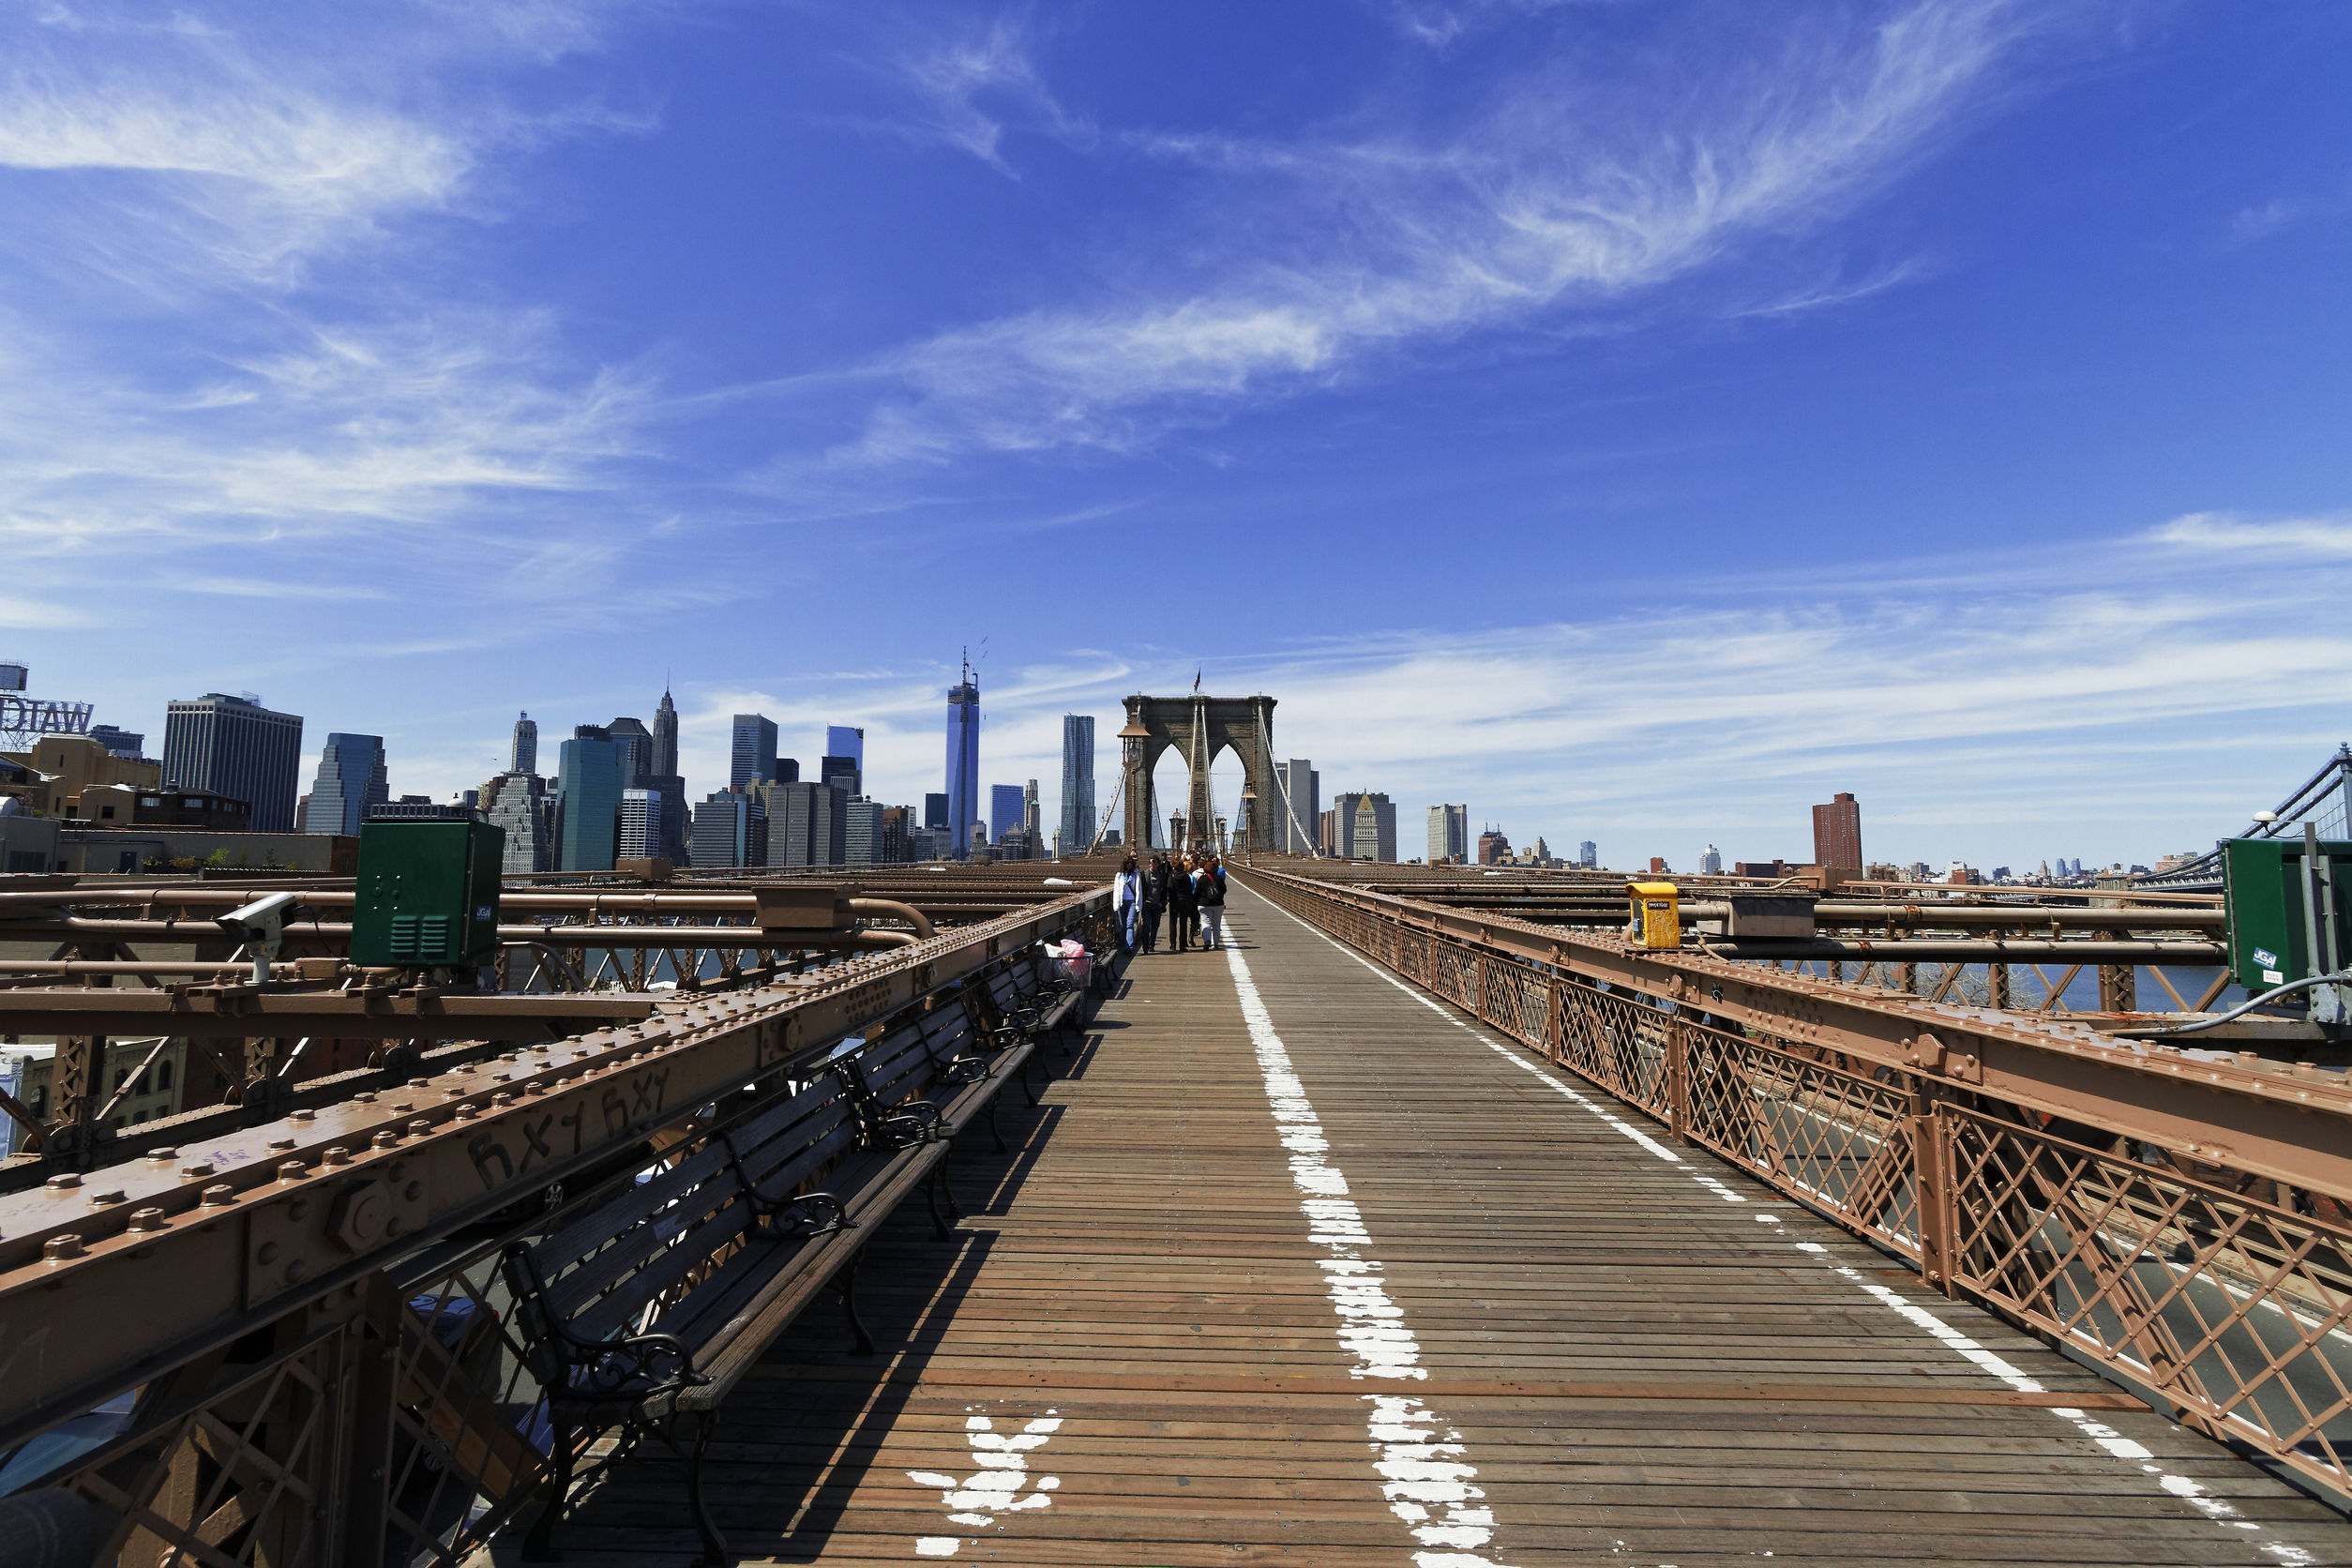 44191692 - views of historic brooklyn bridge in new york city.